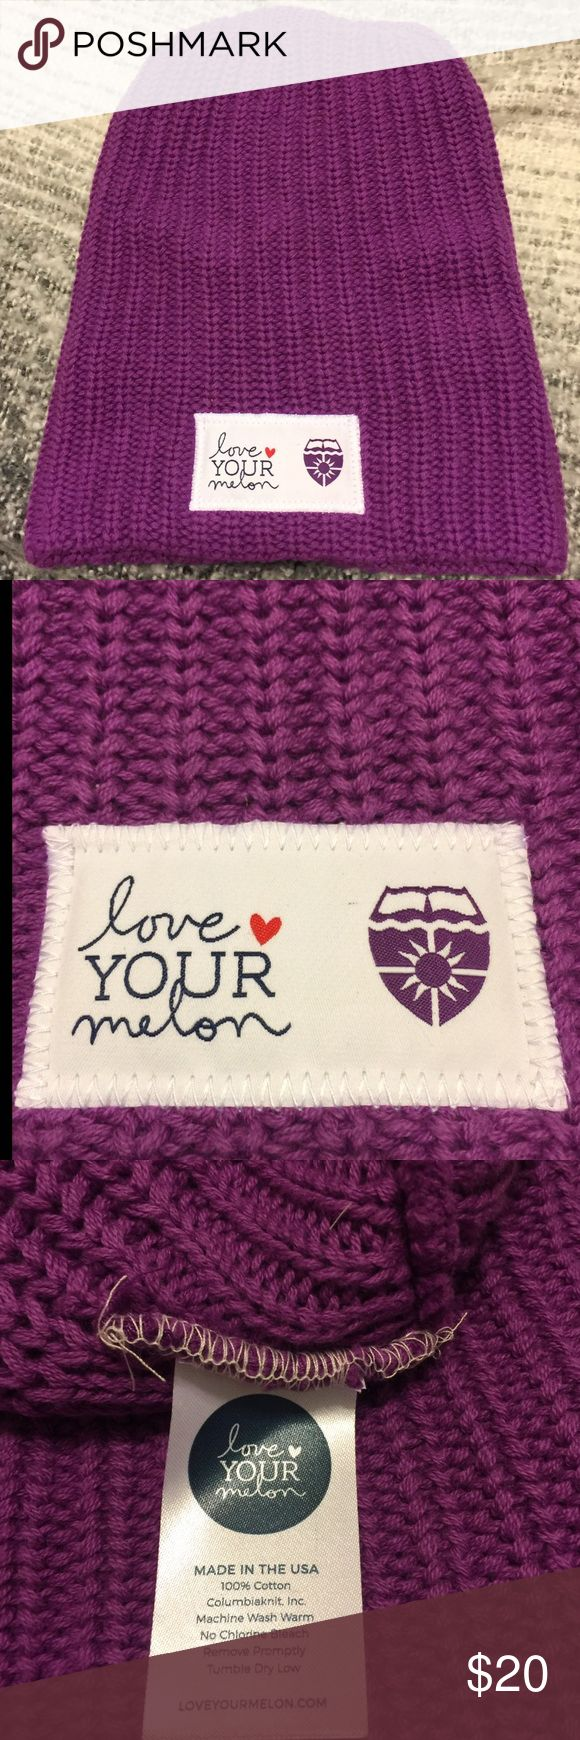 Tommie-purple Hat by Love Your Melon! NWOT Love Your Melon hat, in UST purple with logo on tag of hat. Super soft and warm. Never worn, NWOT. Cuffed beanie-style of 100% cotton yarn. One size fits all! Happy Shopping!! 🦄🦄 Love Your Melon Accessories